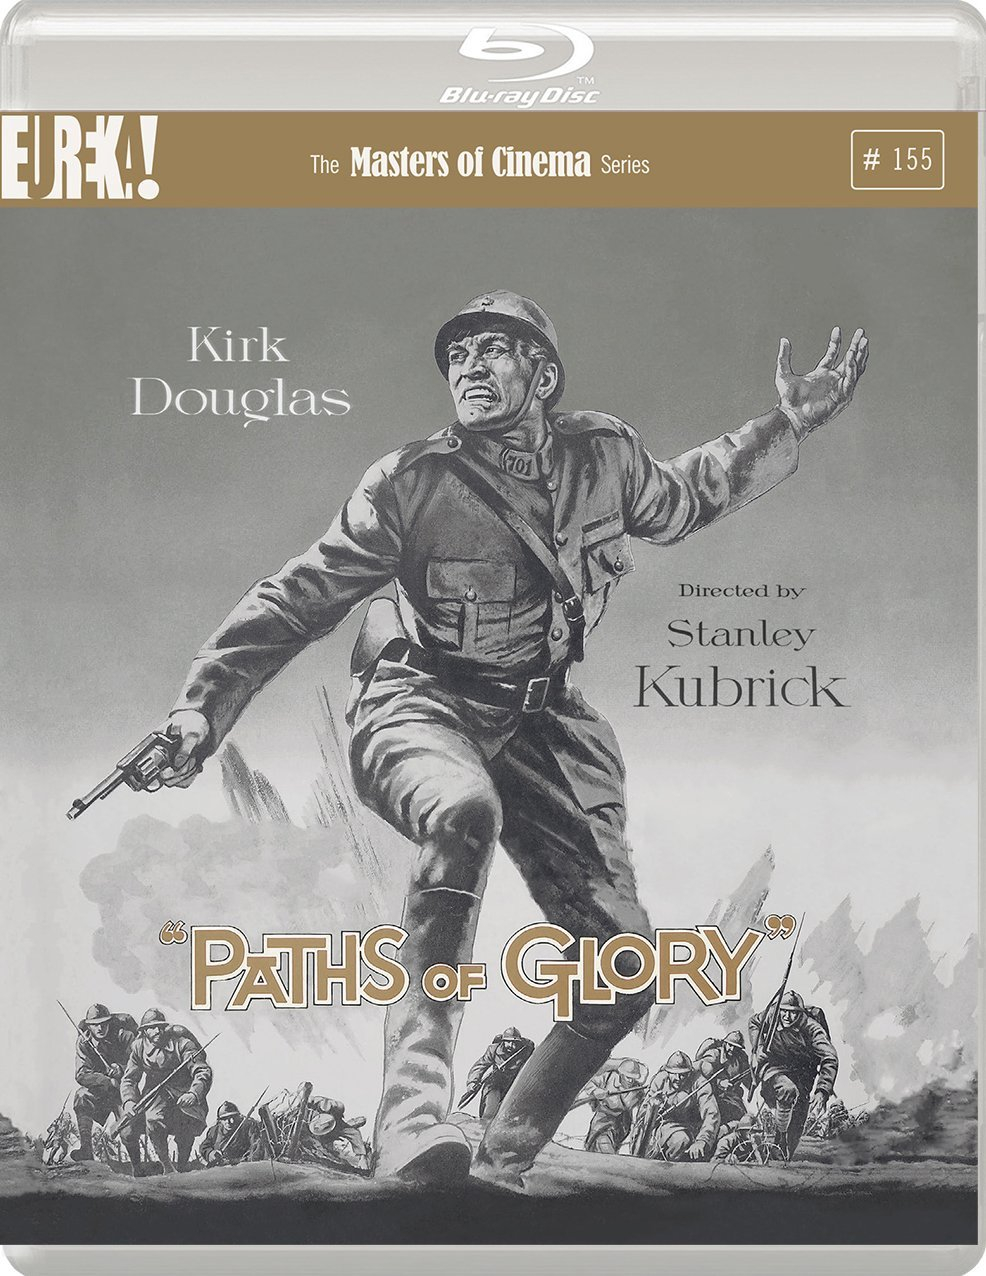 Buy Paths of Glory (Blu-ray)